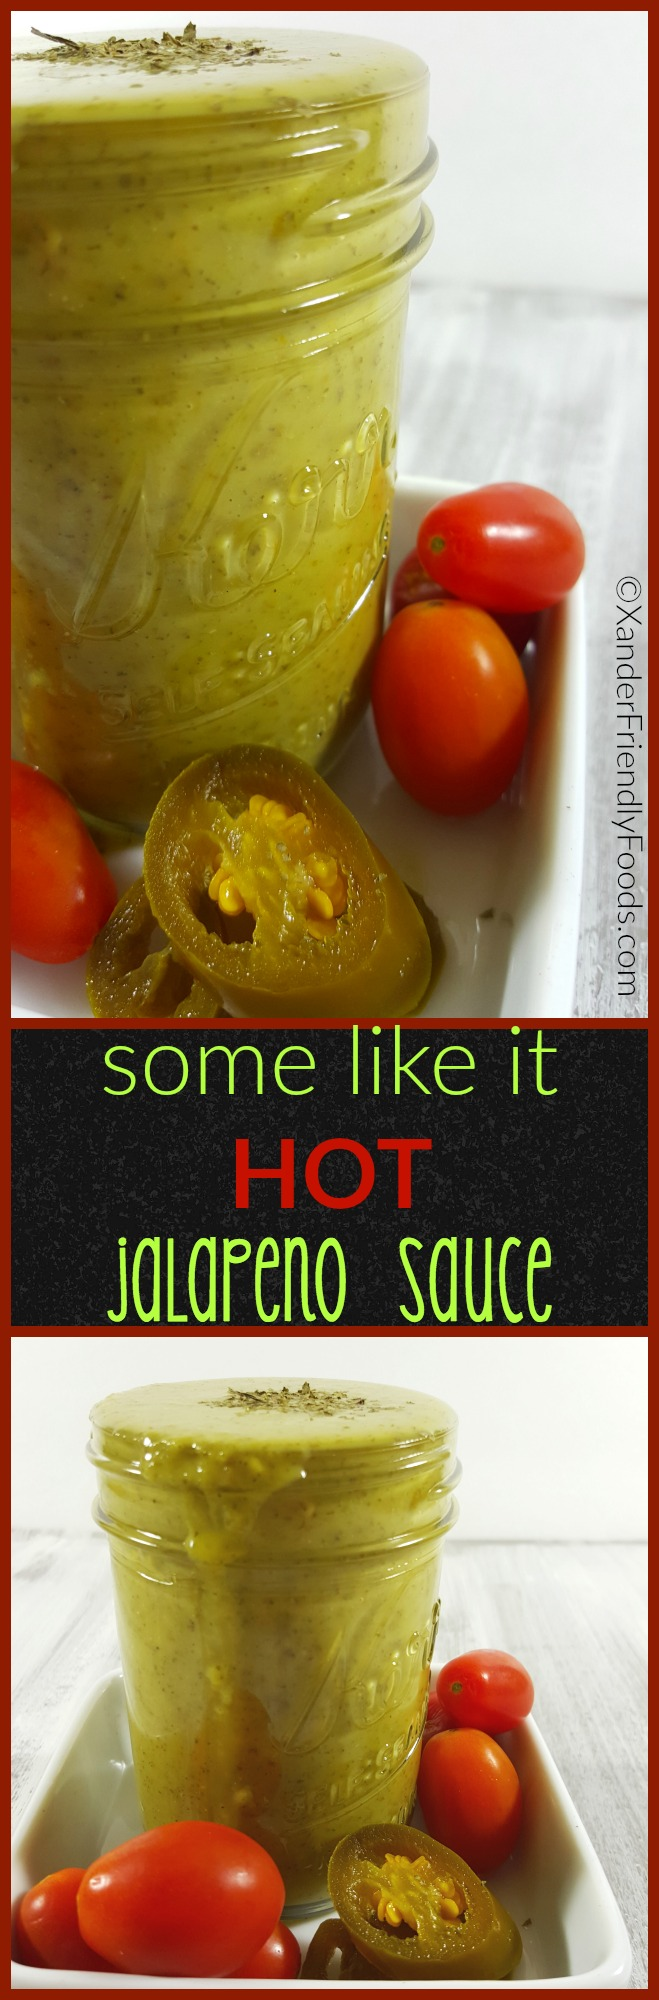 Quick-n-easy Jalapeno Sauce